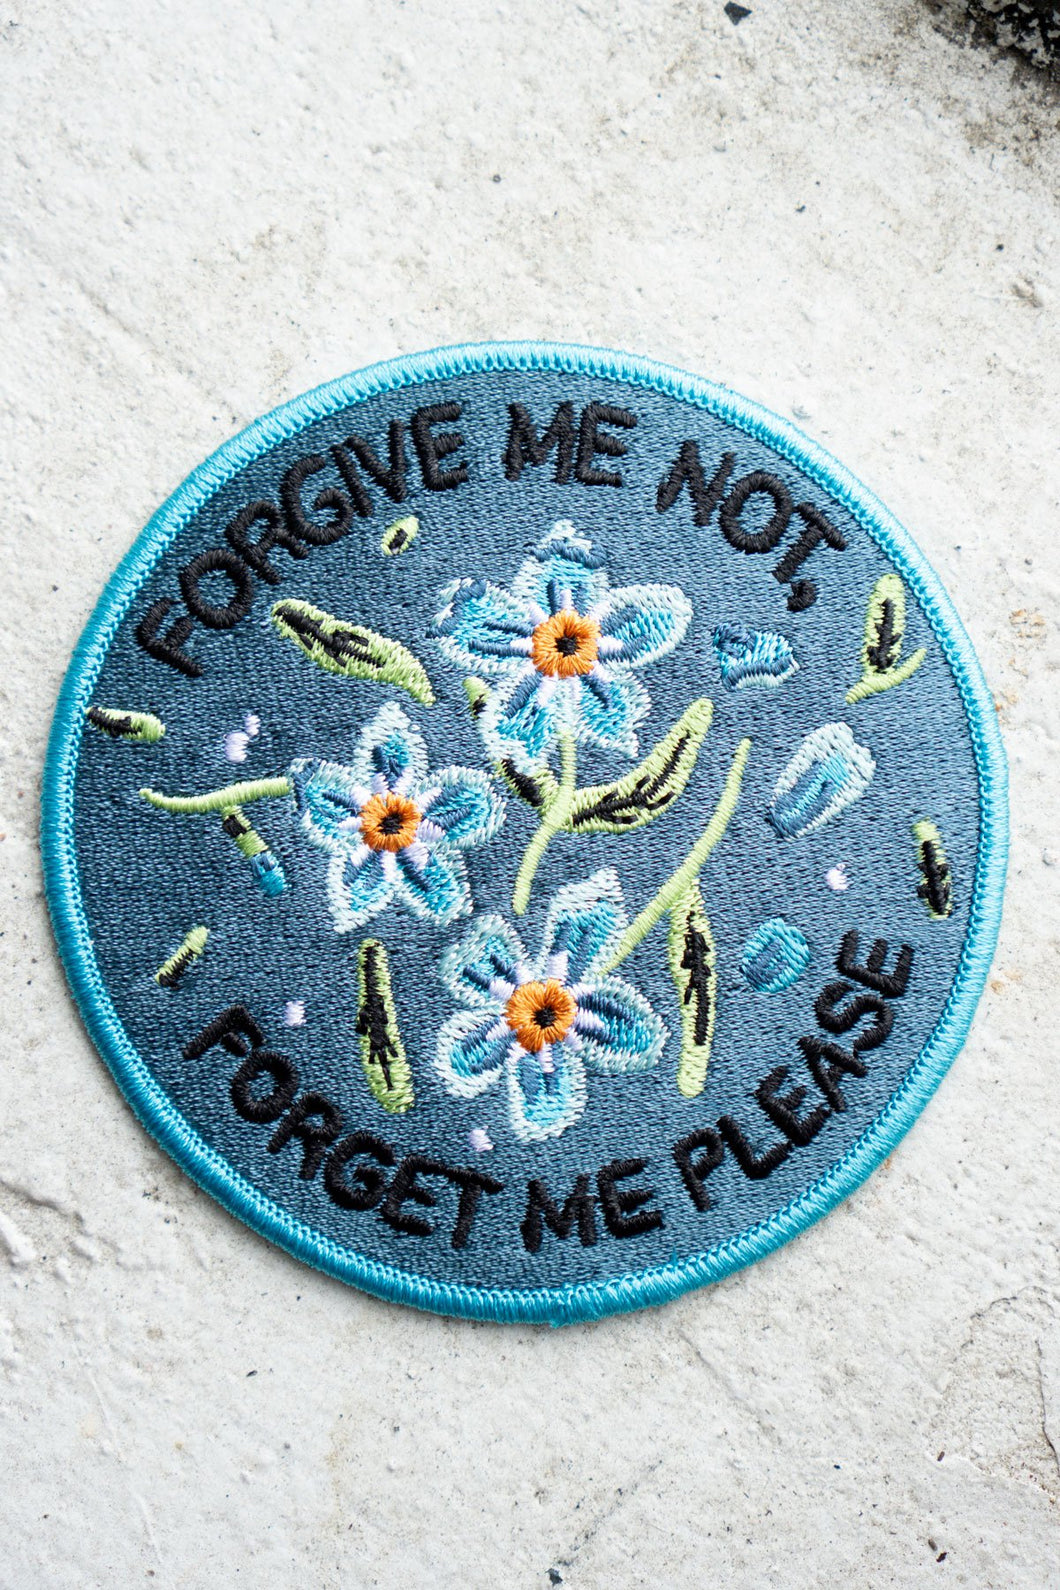 Stay Home Club Forgive Me Not Patch Indie Edinburgh